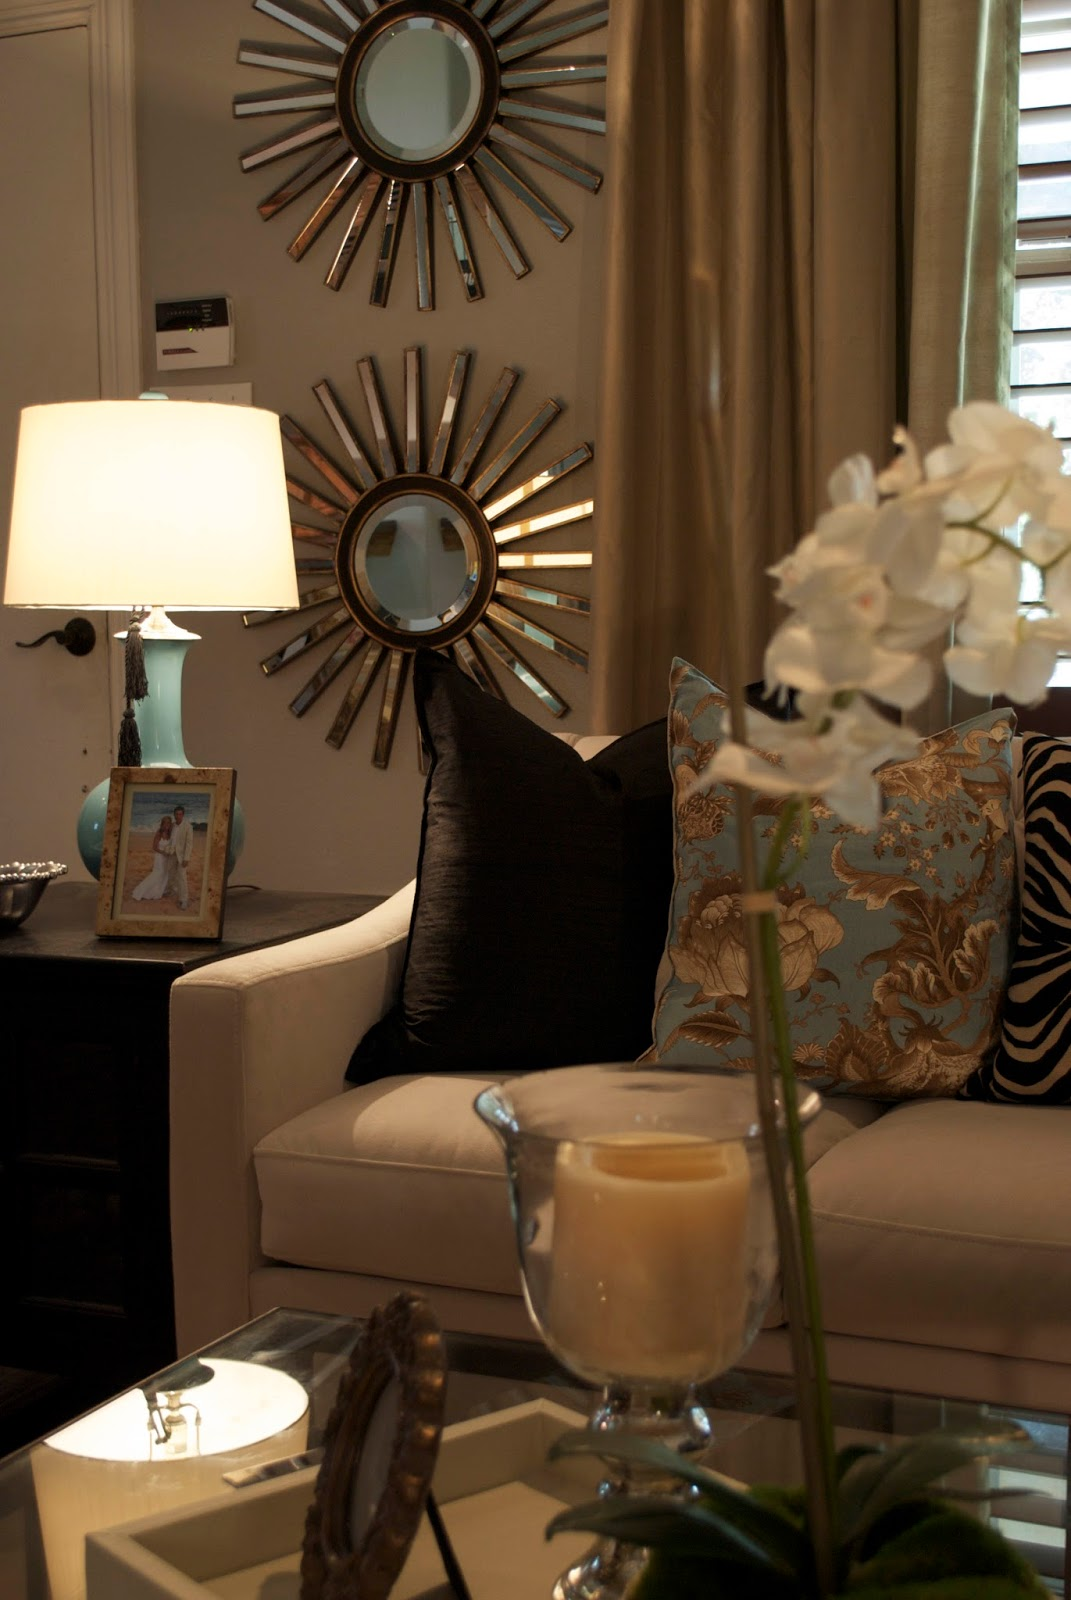 30 exceptional ideas for decorating with a sunburst mirror for Home decorating mirrors